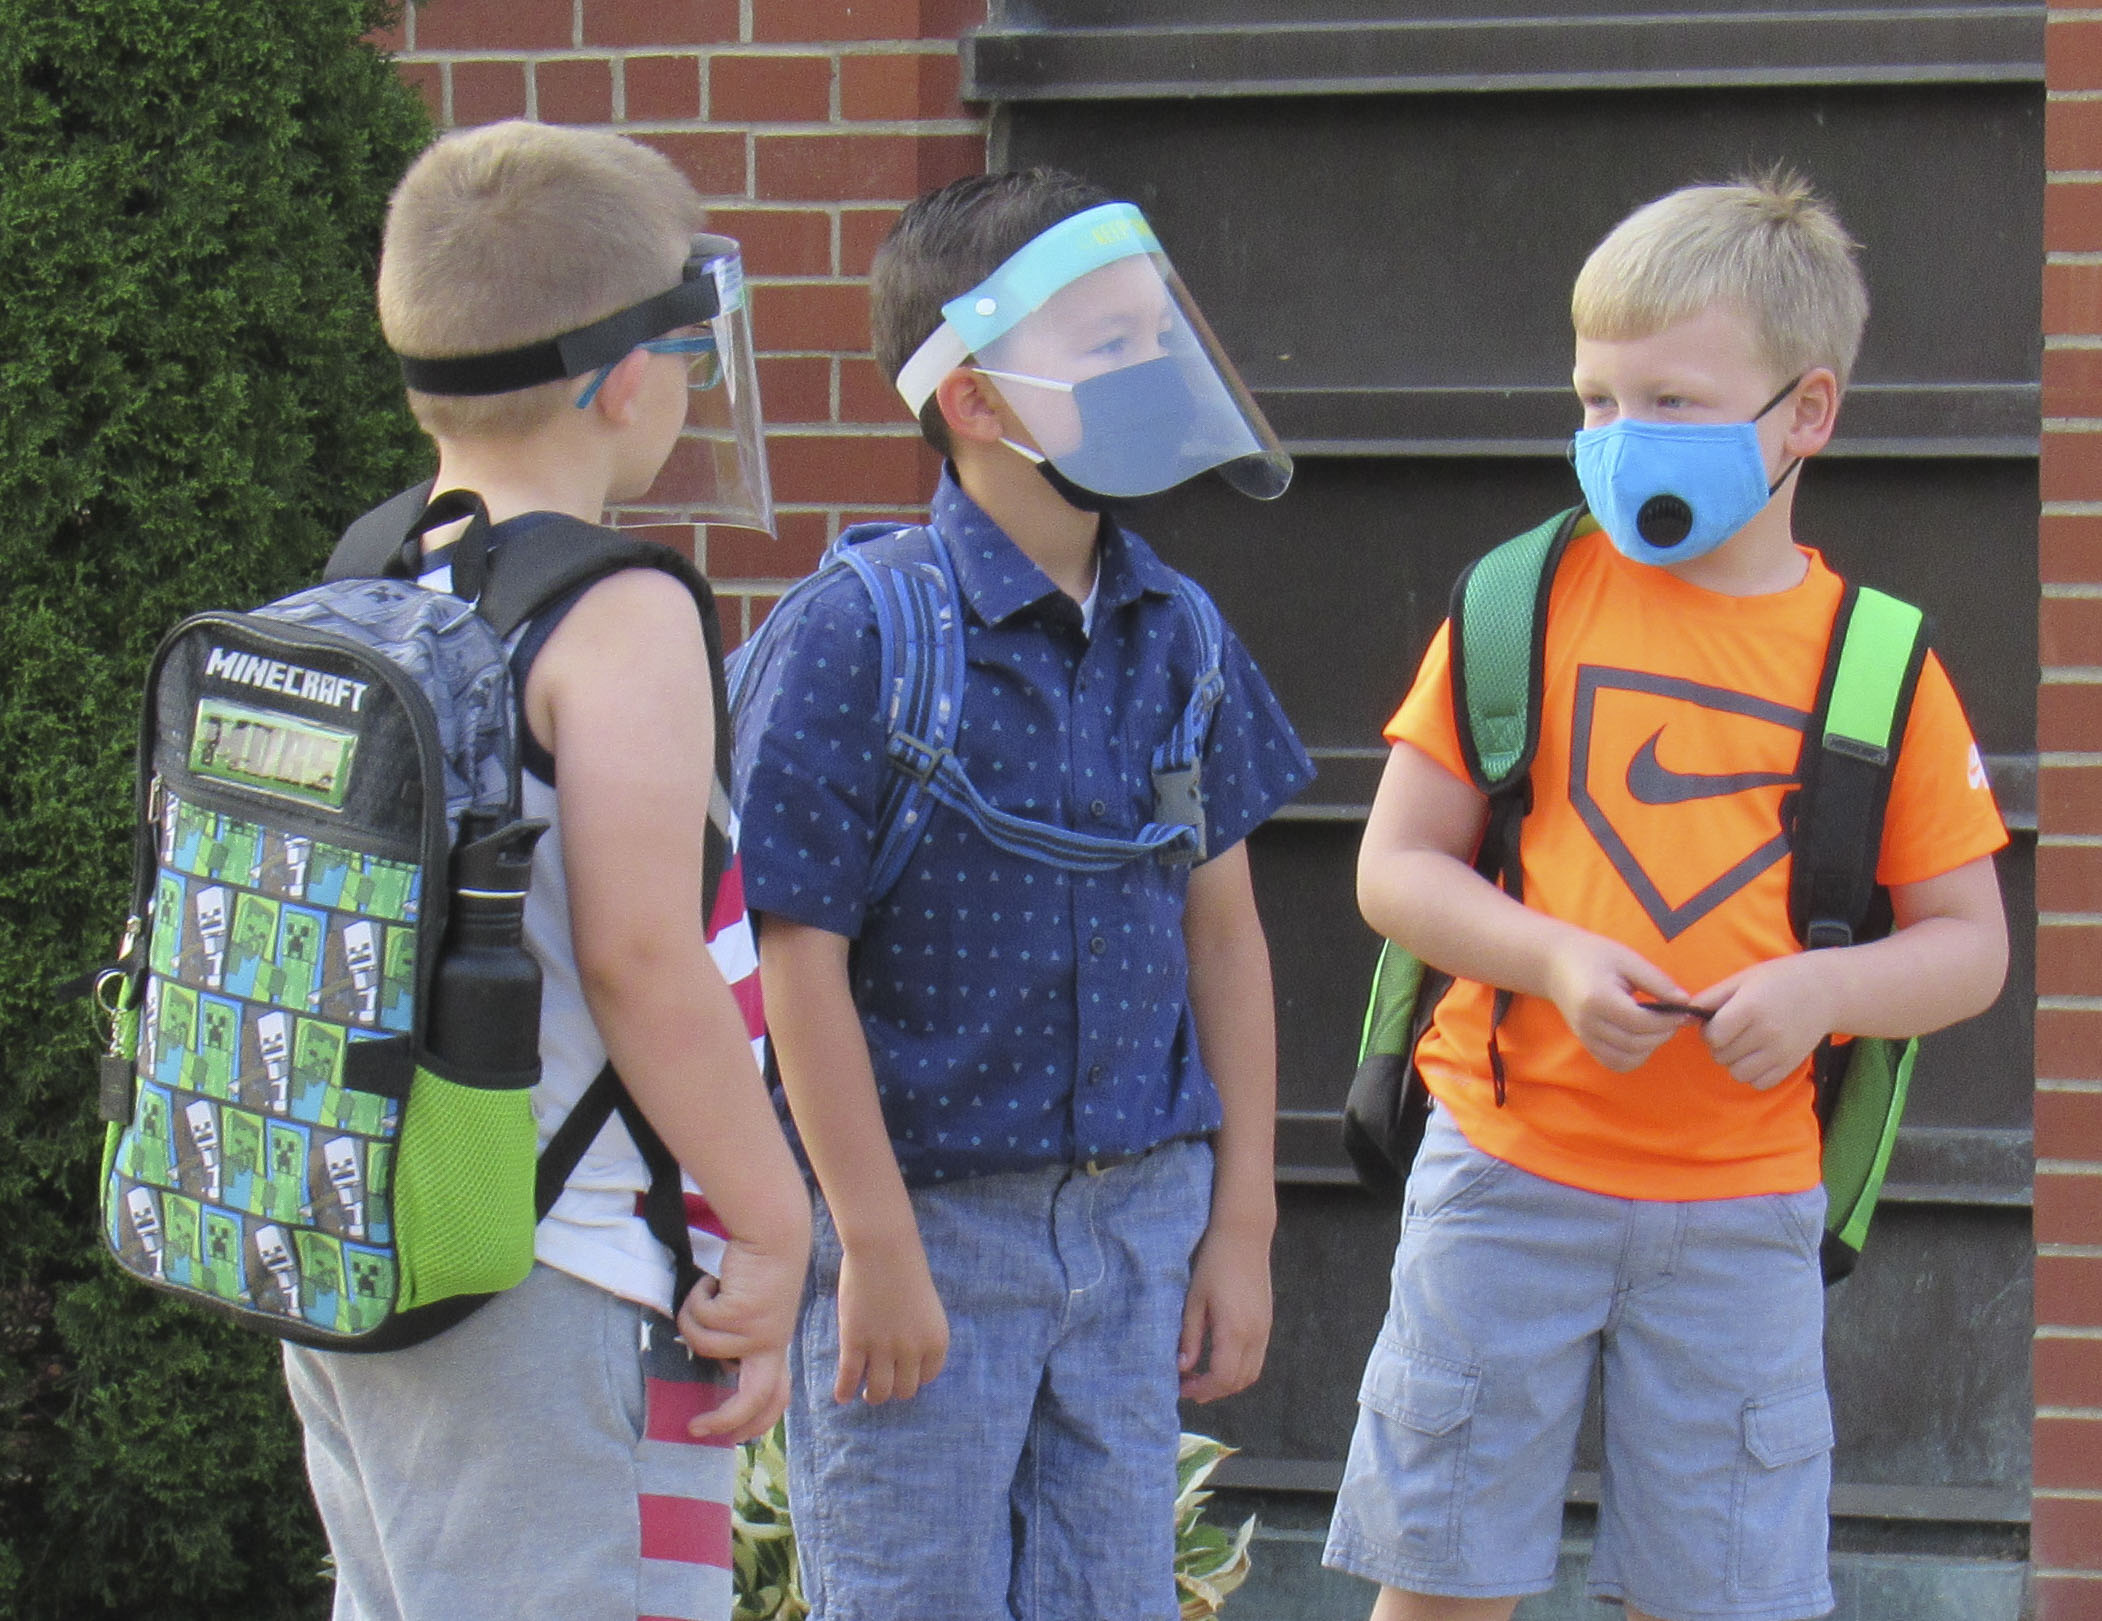 First-graders at Sacred Heart, Lincoln Crawford, David Lyons, and David Intlekofer, join together on the first day of school. Face coverings were a must as students waited in line. (Photo by Kim Brooks)